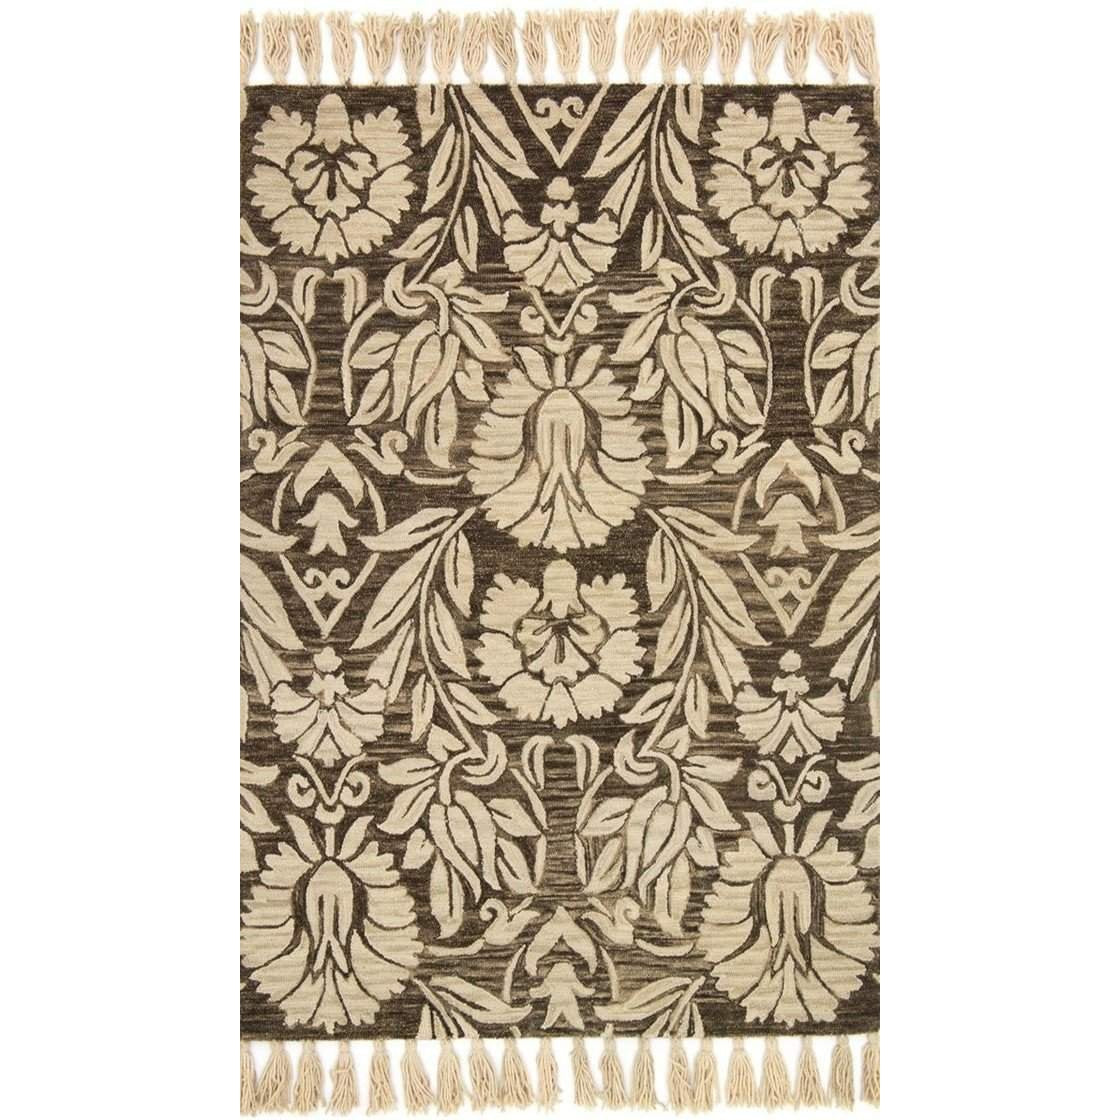 Joanna Gaines Jozie Day Rug Collection - JG-01 CHARCOAL